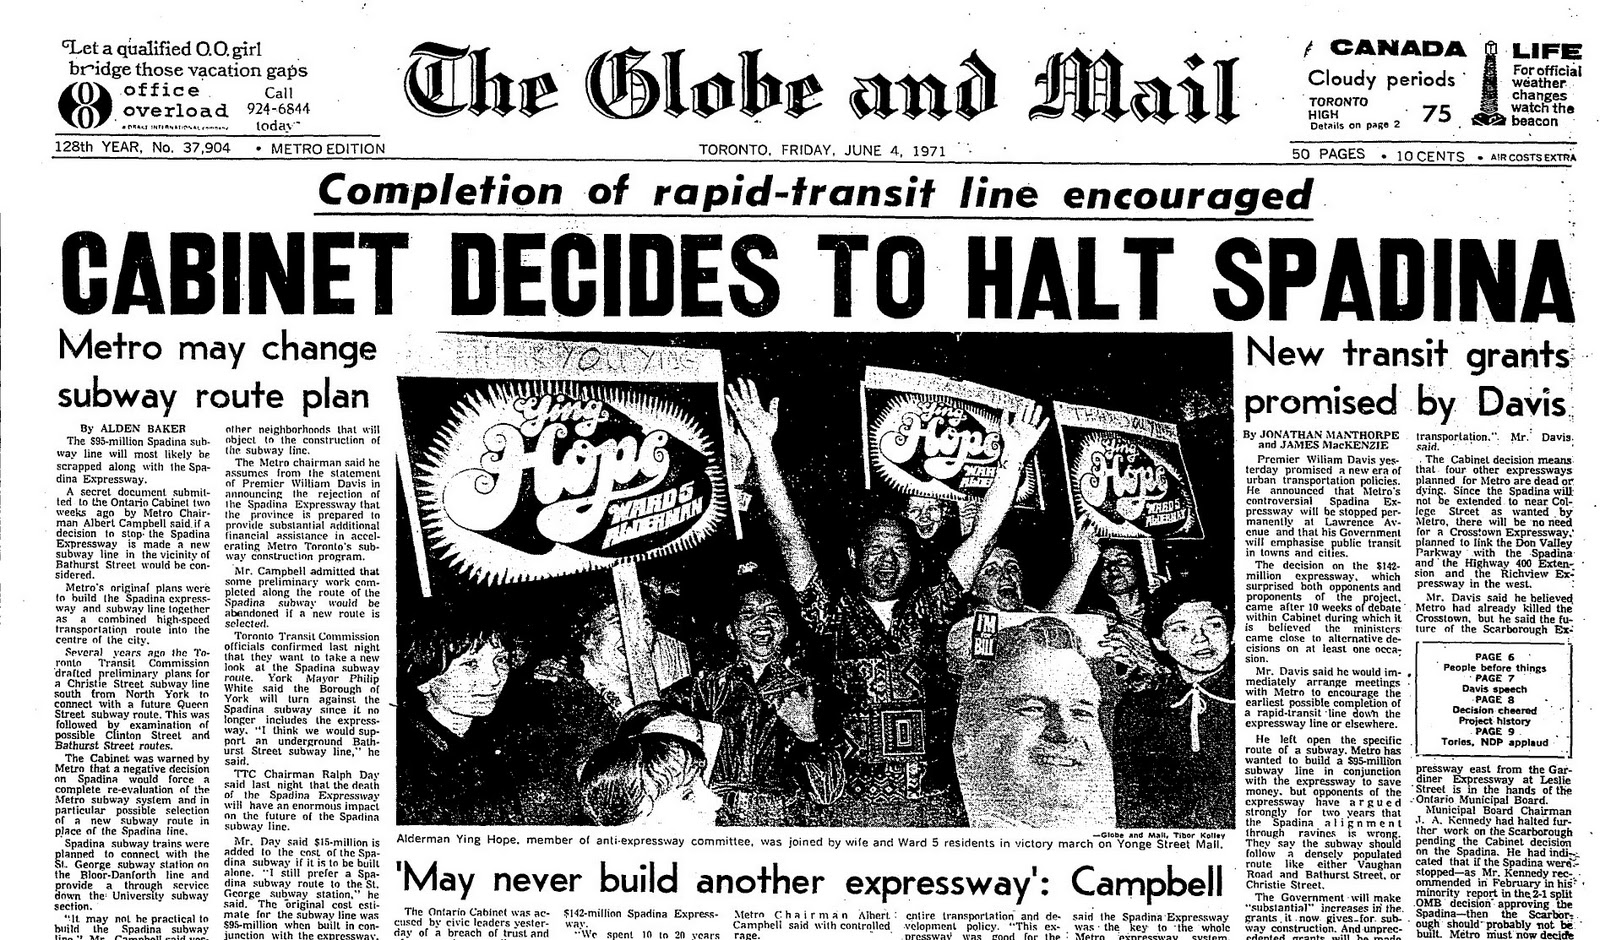 how to find old newspaper articles canada